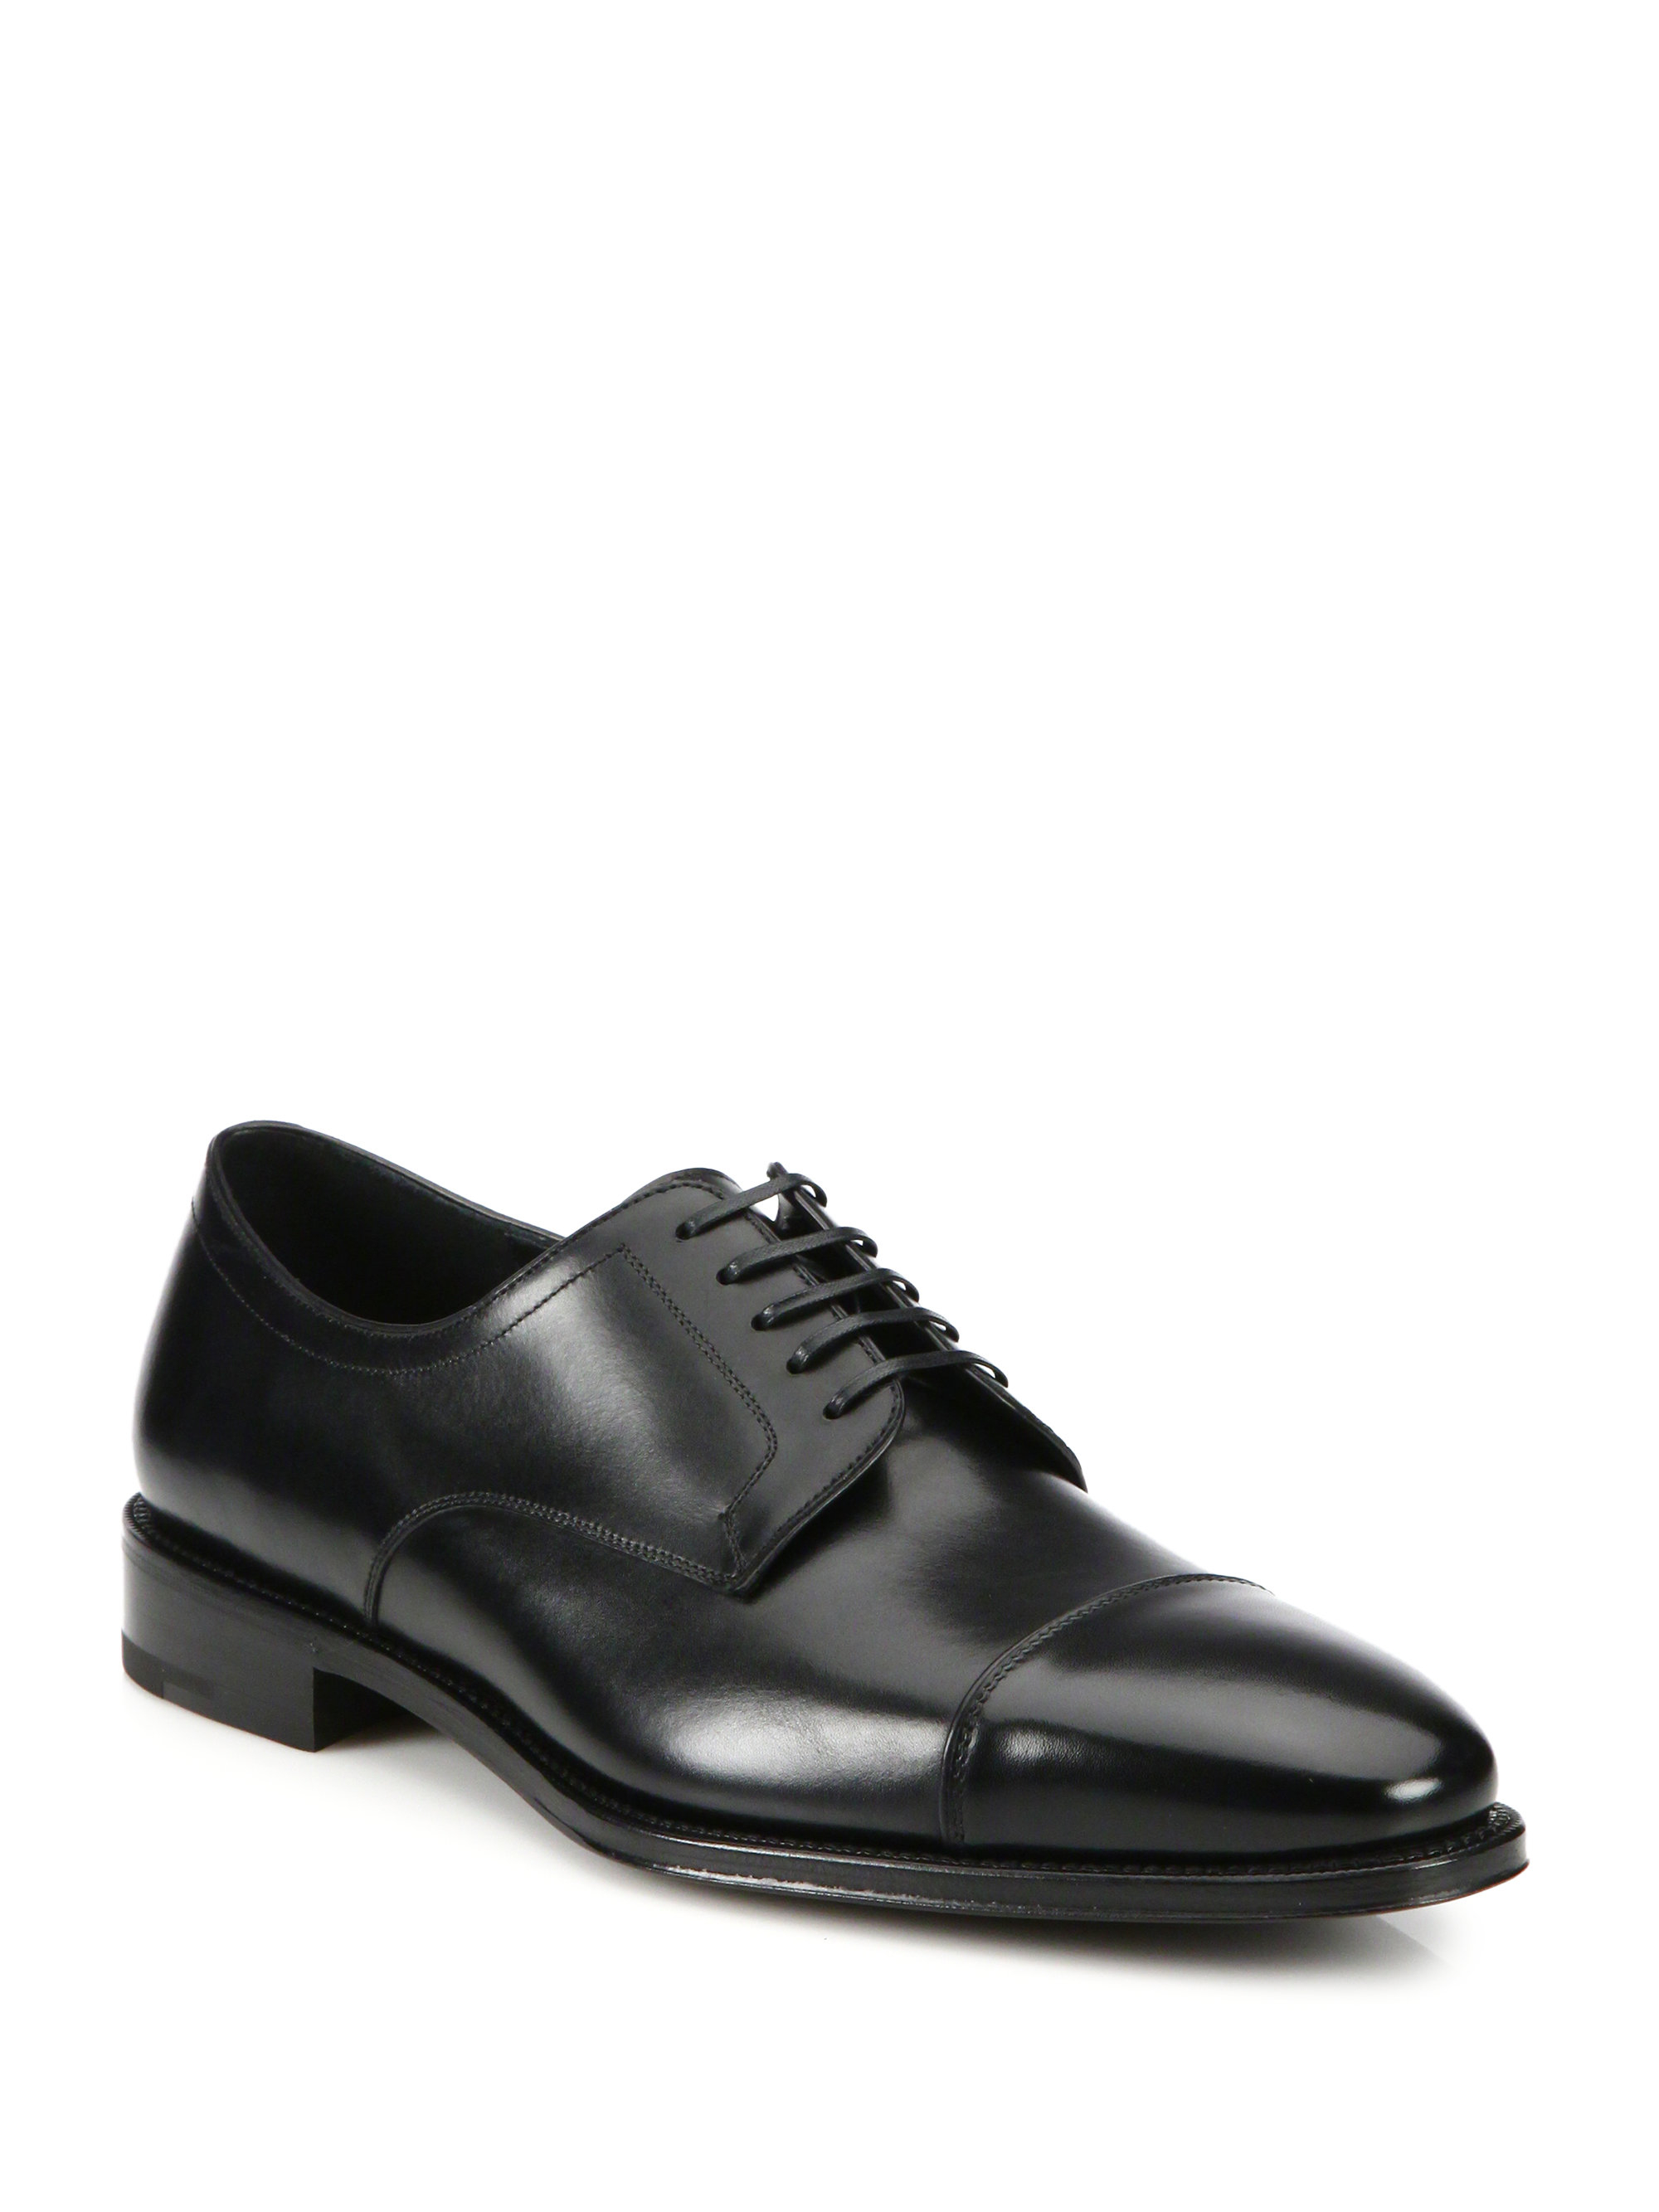 ferragamo mabel cap toe leather lace up shoes in black for